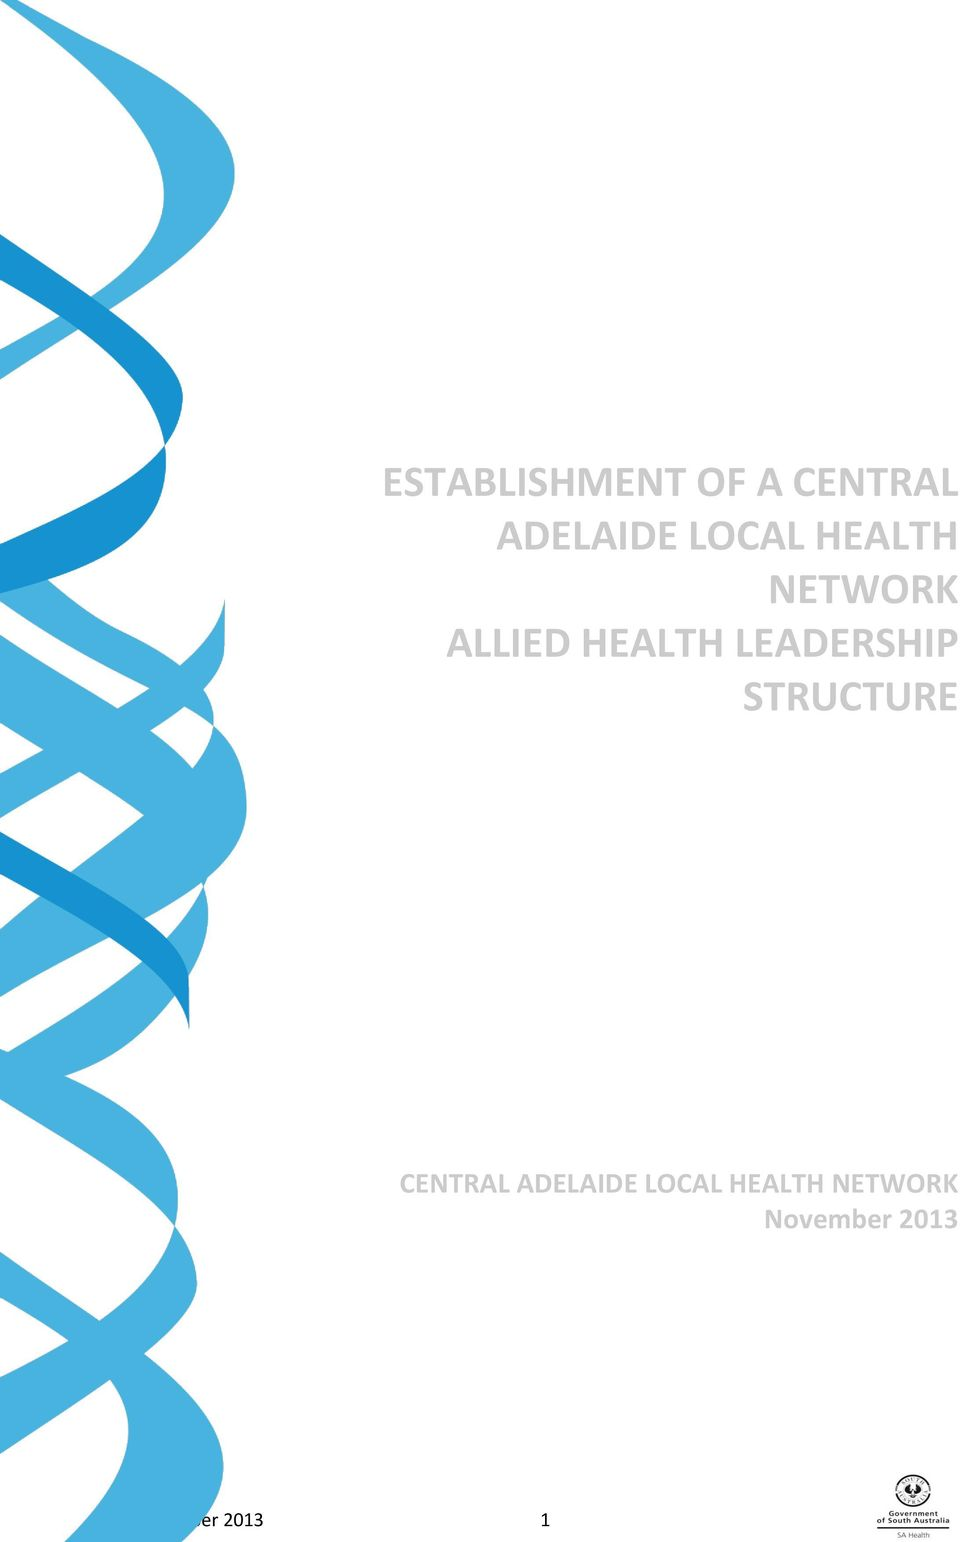 LEADERSHIP STRUCTURE CENTRAL ADELAIDE